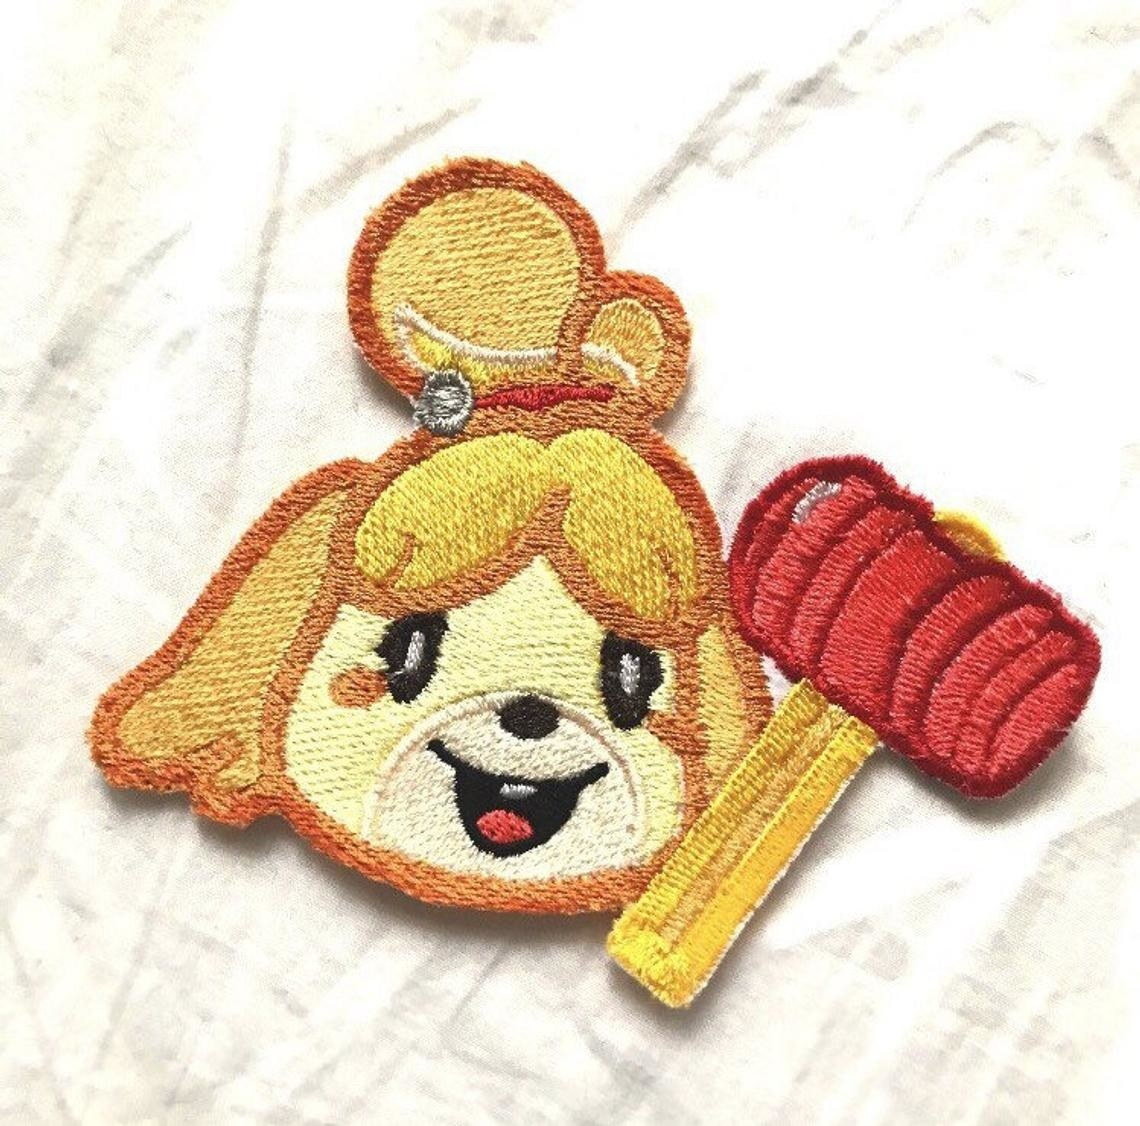 isabelle's head with her red mallet from super smash brothers ultimate